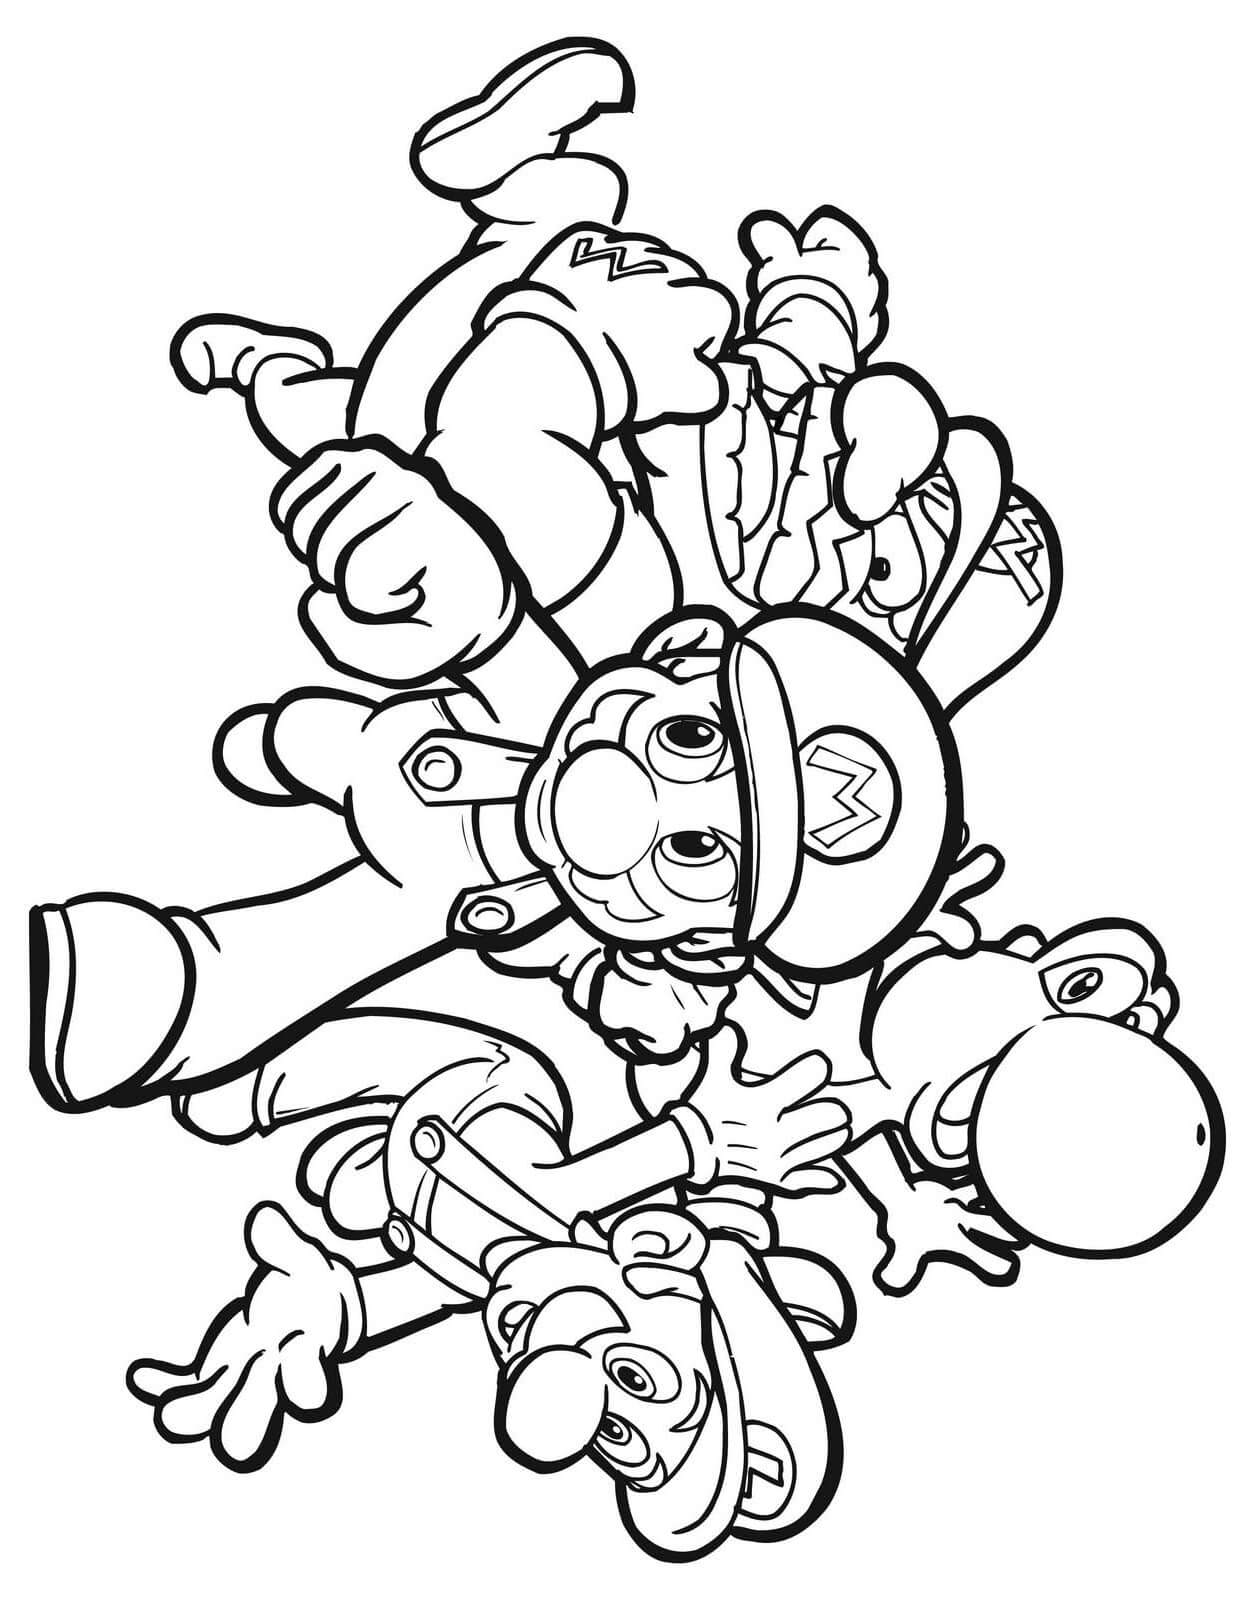 printable mario coloring pages coloring pages mario coloring pages free and printable pages mario printable coloring